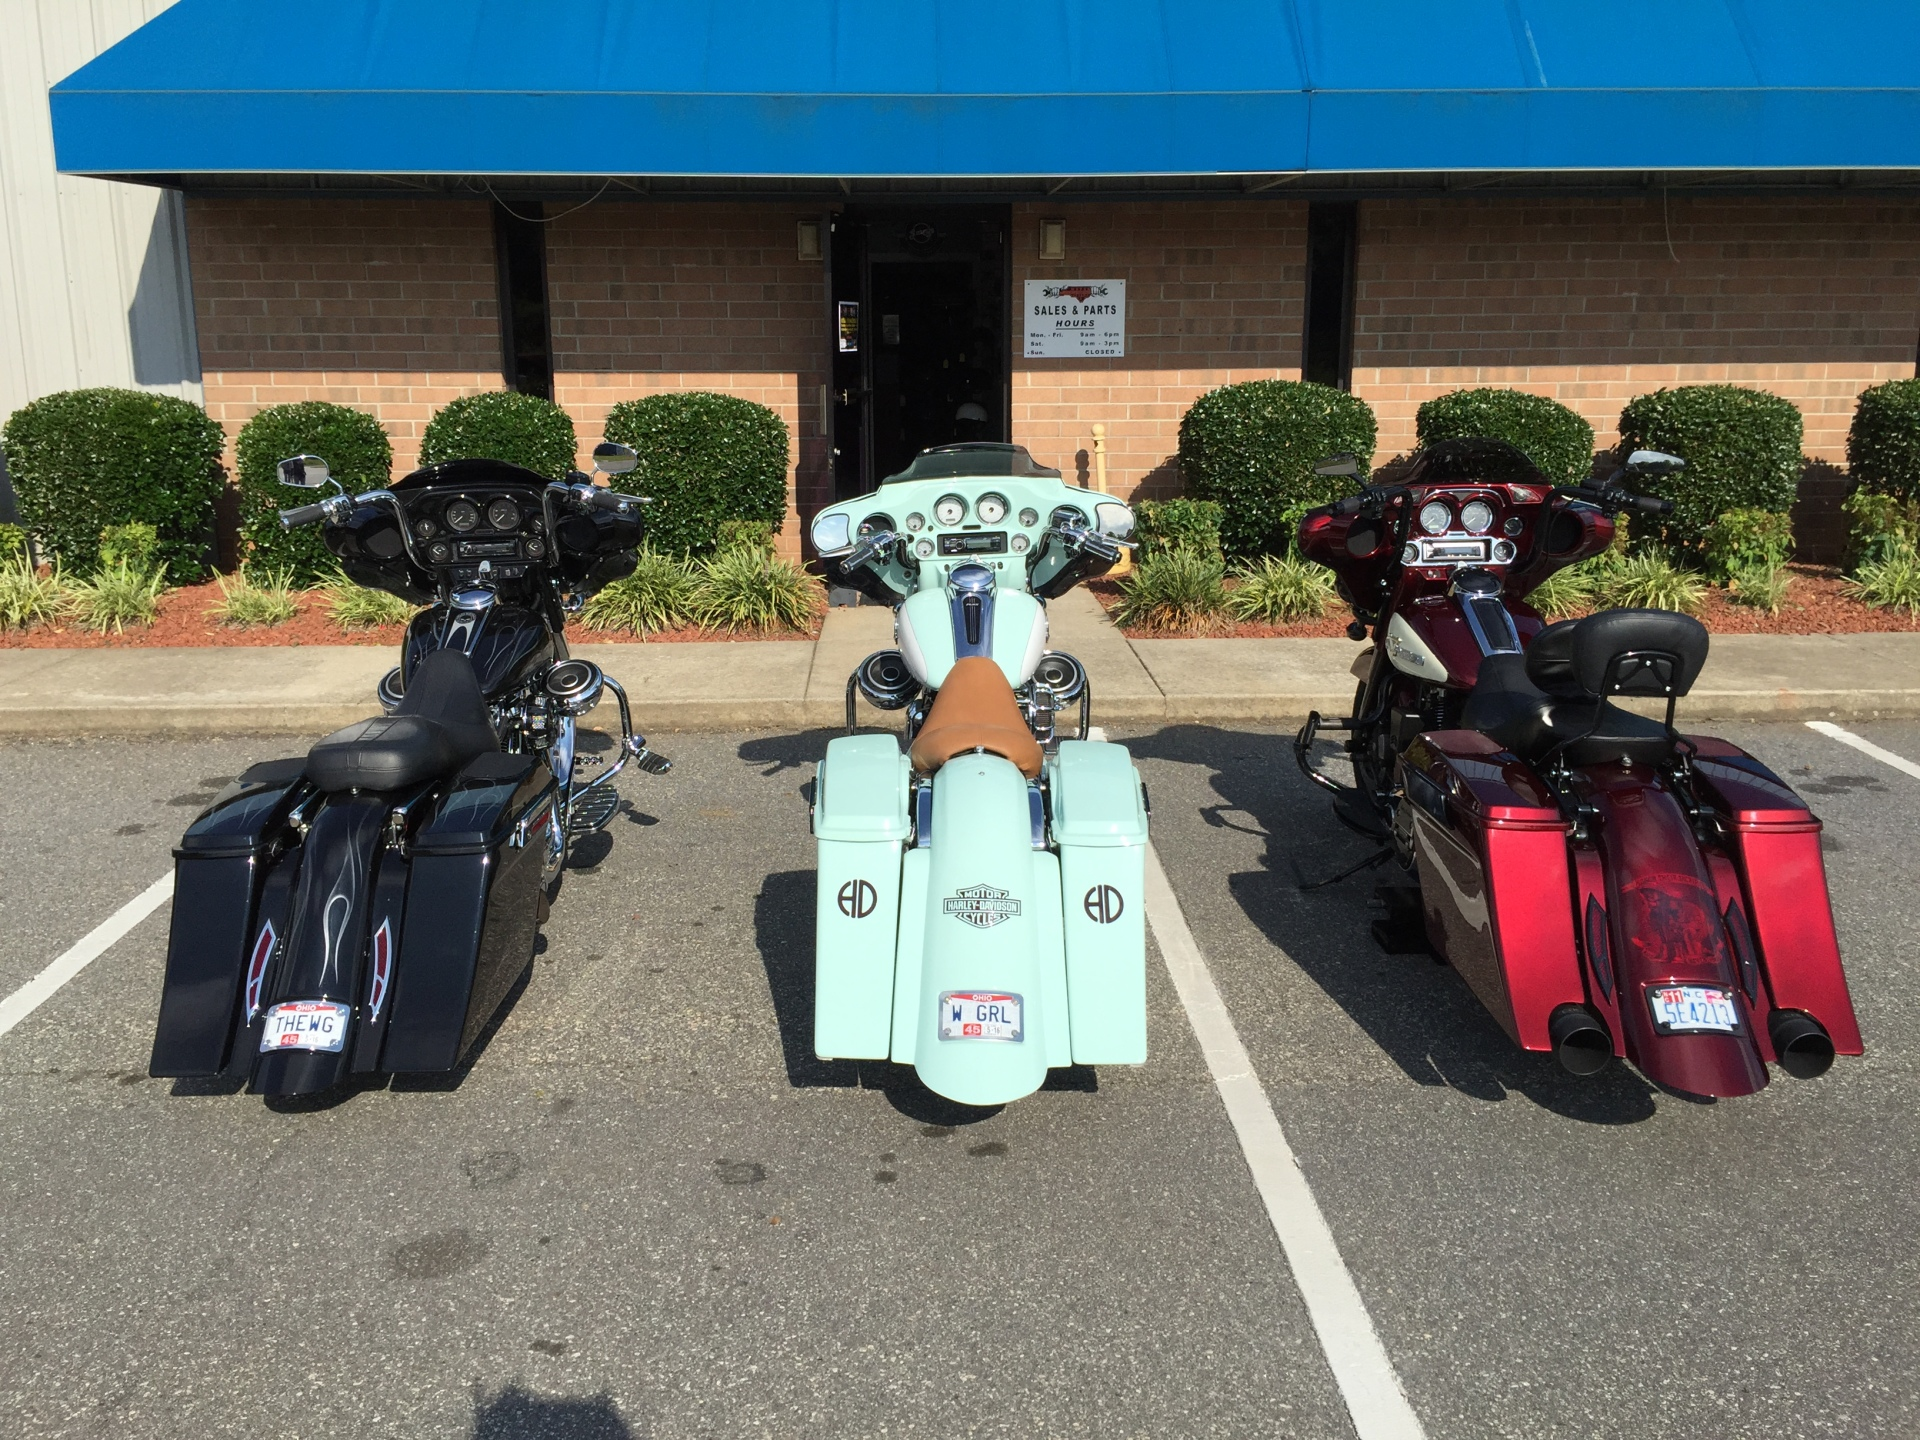 Bad Dad rear sets up, competition series bags... 3 options for tail lights